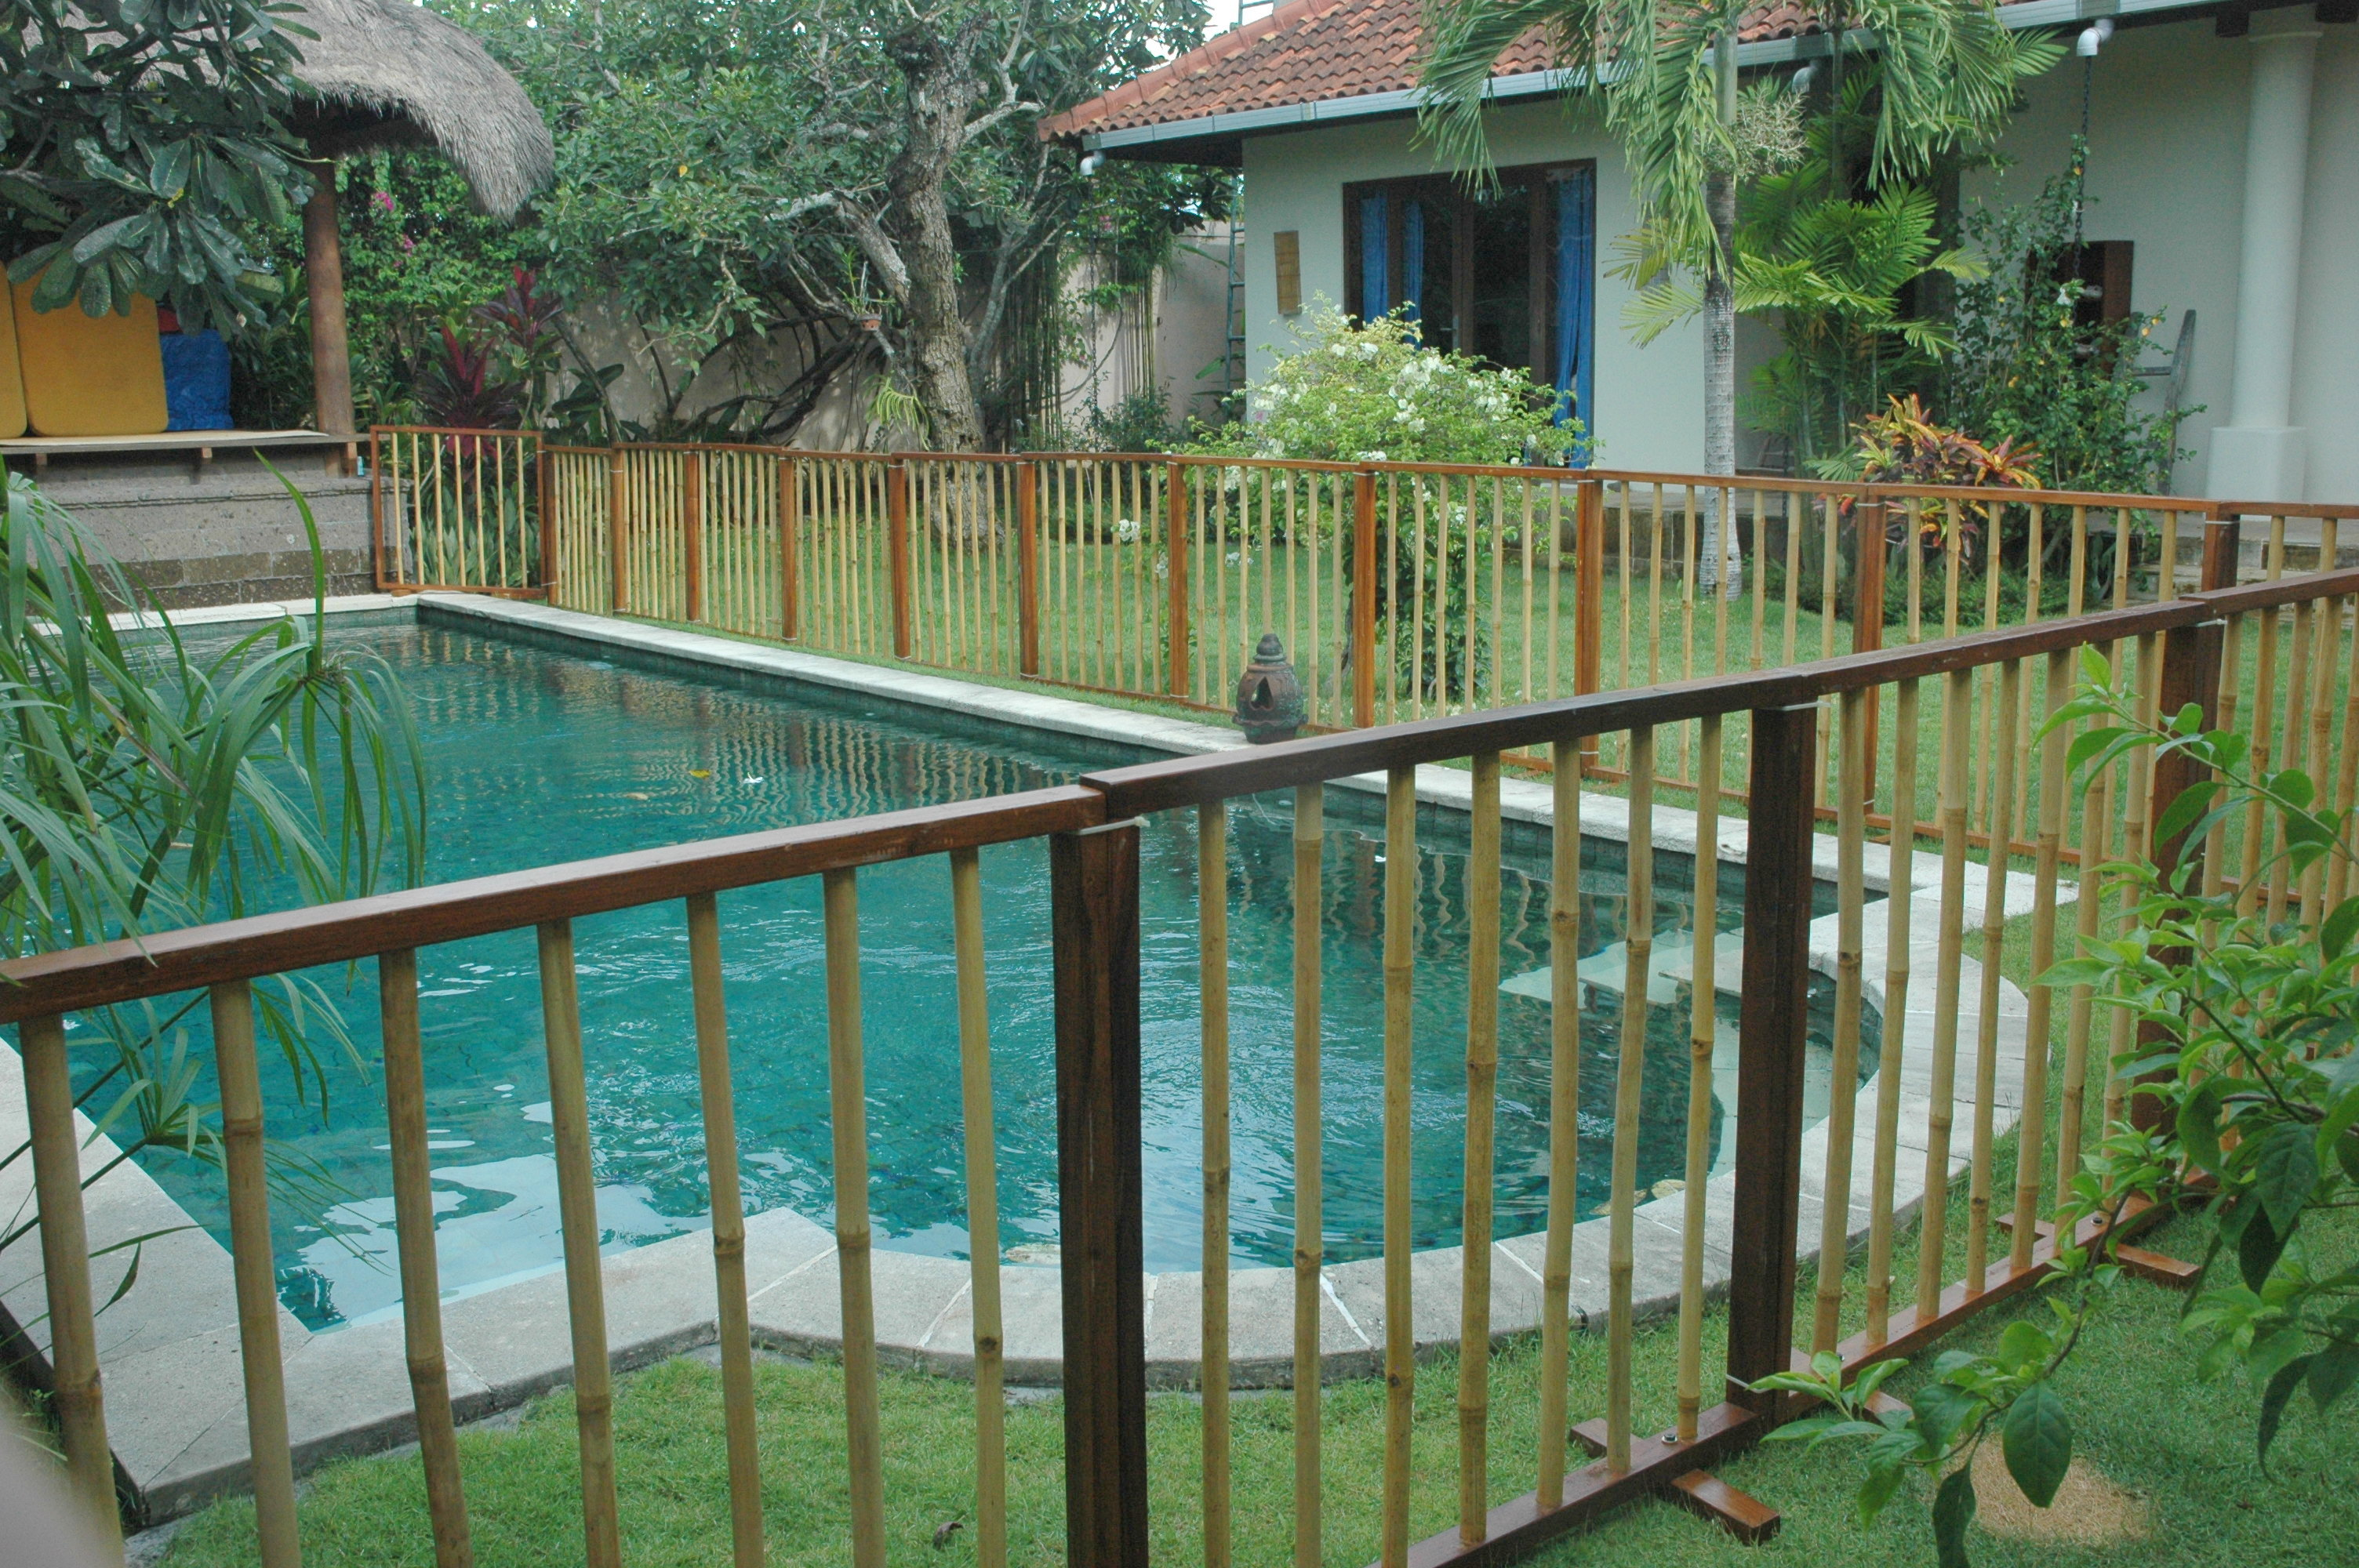 Temporary Wooden Pool Fences Baby Service Bali Baby Equipment